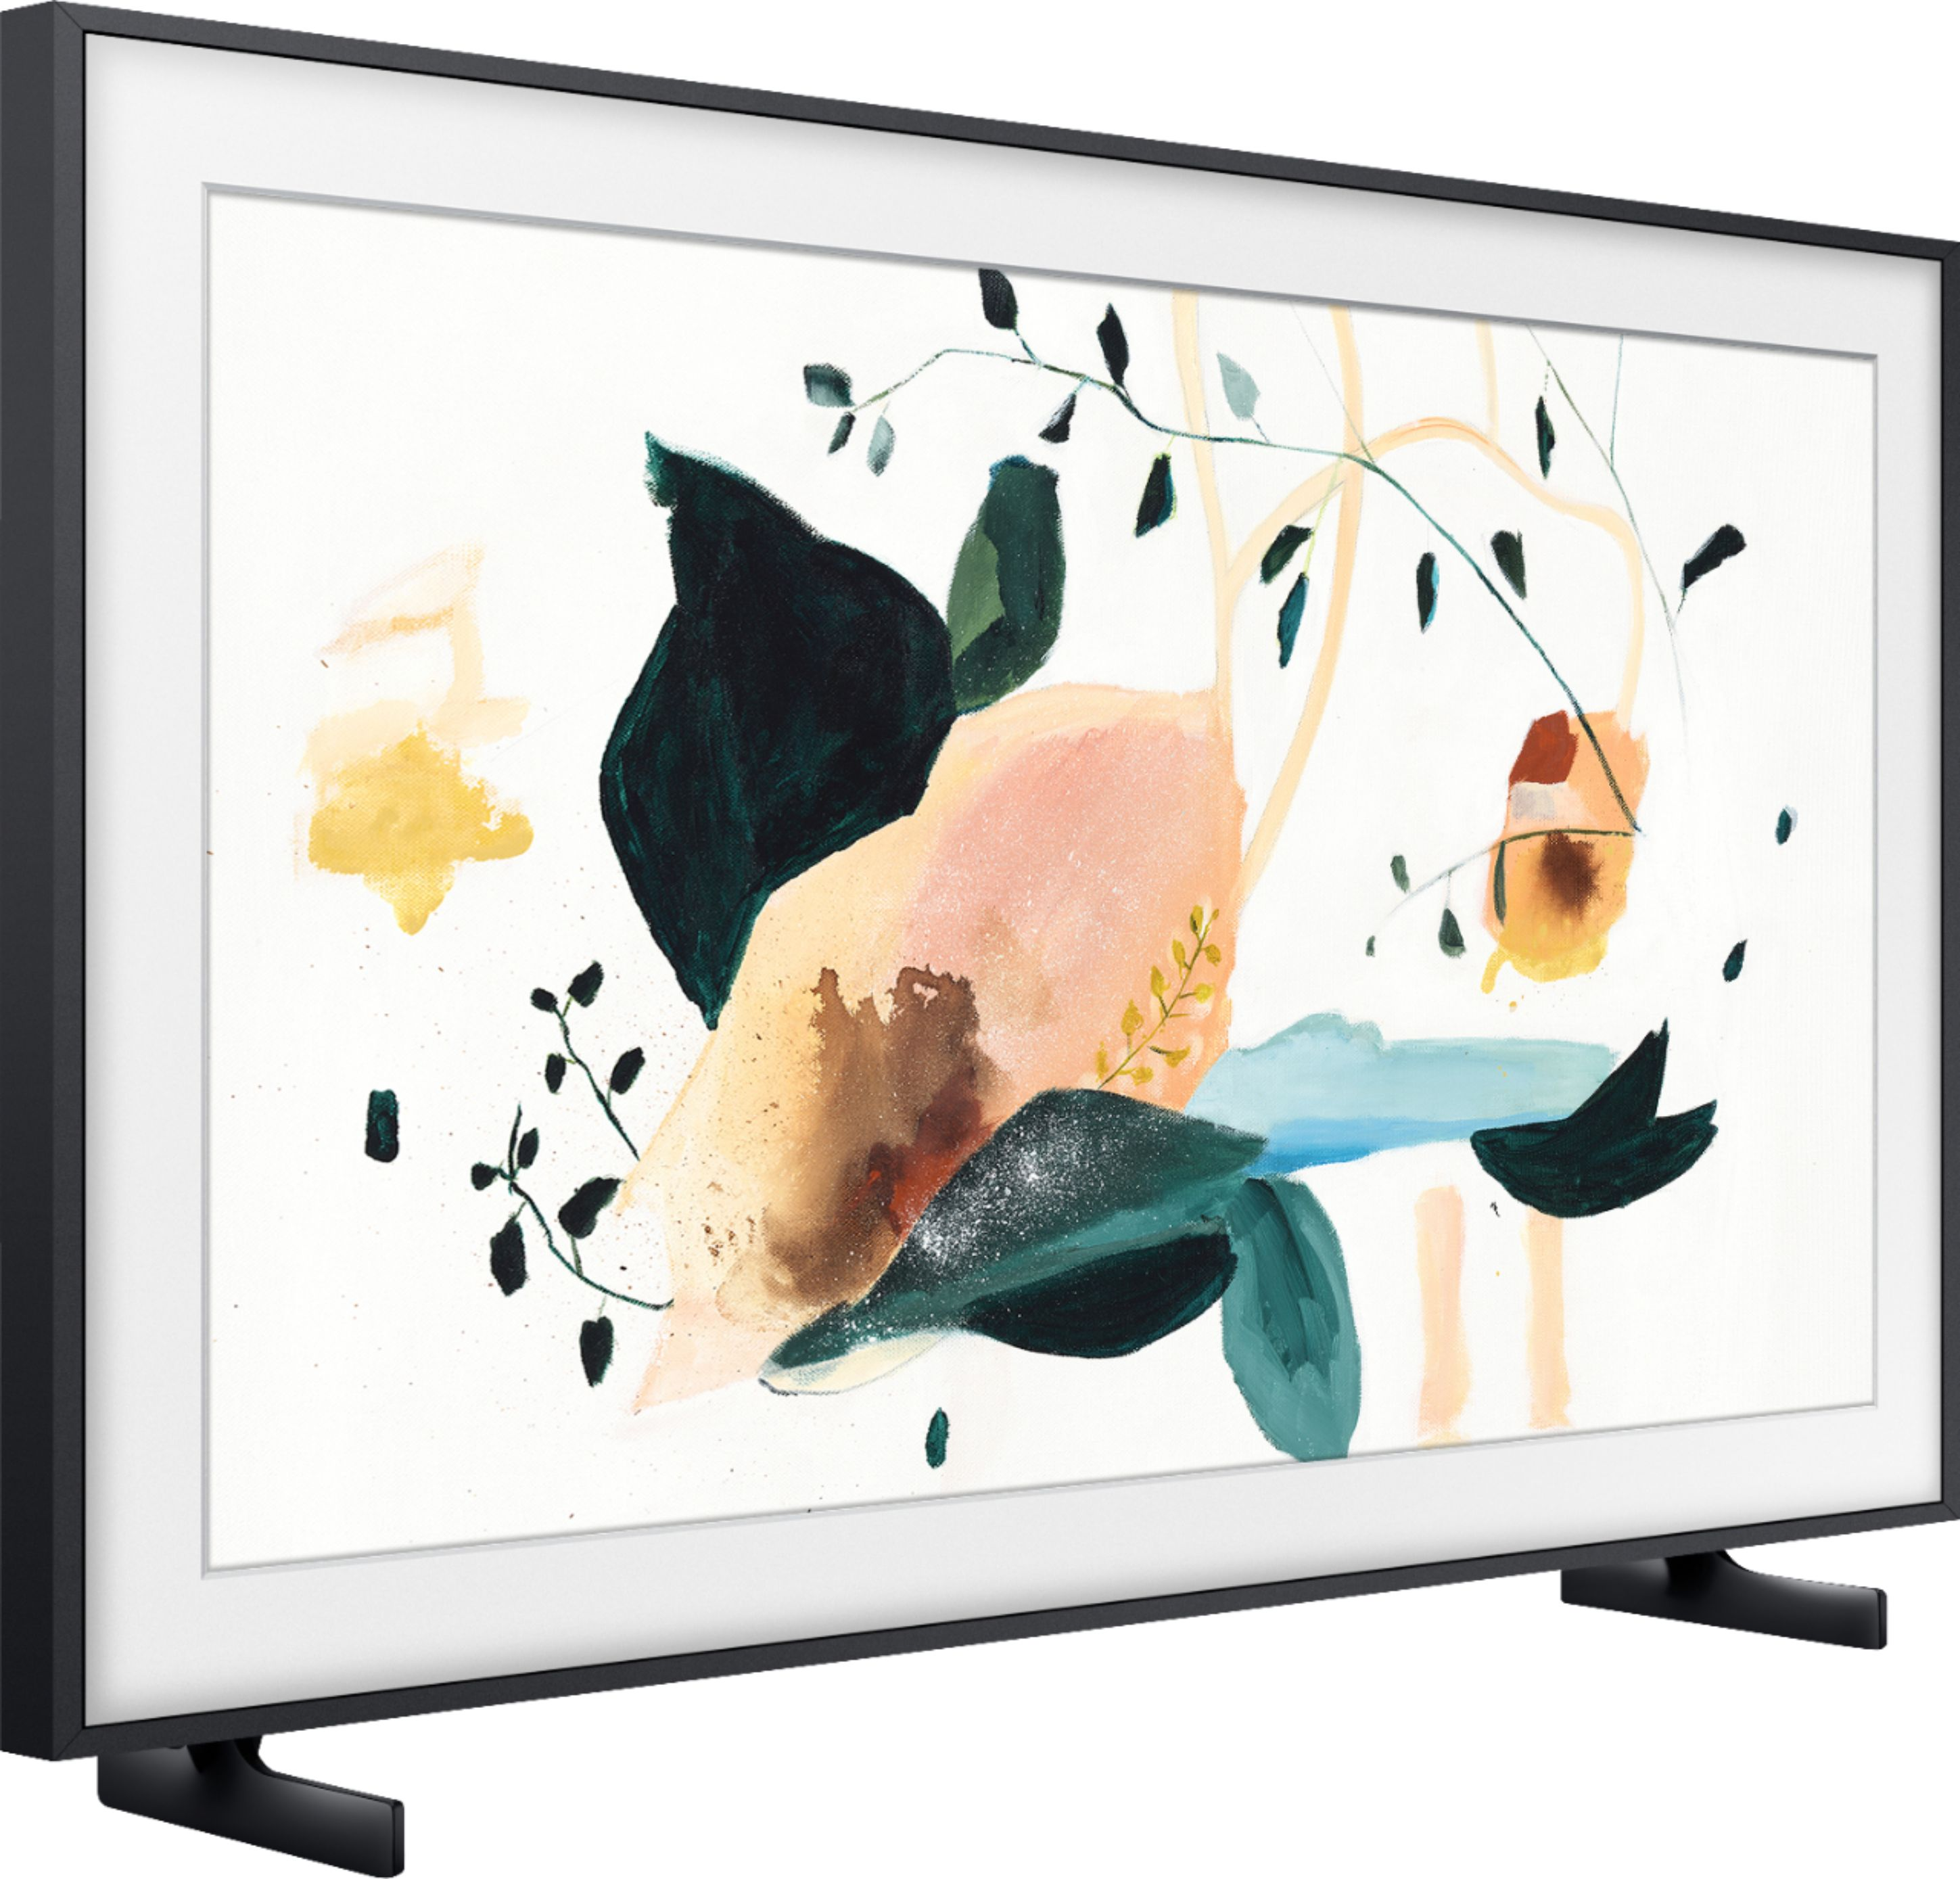 "43"" The Frame Series 4K UHD TV Smart LED with HDR"